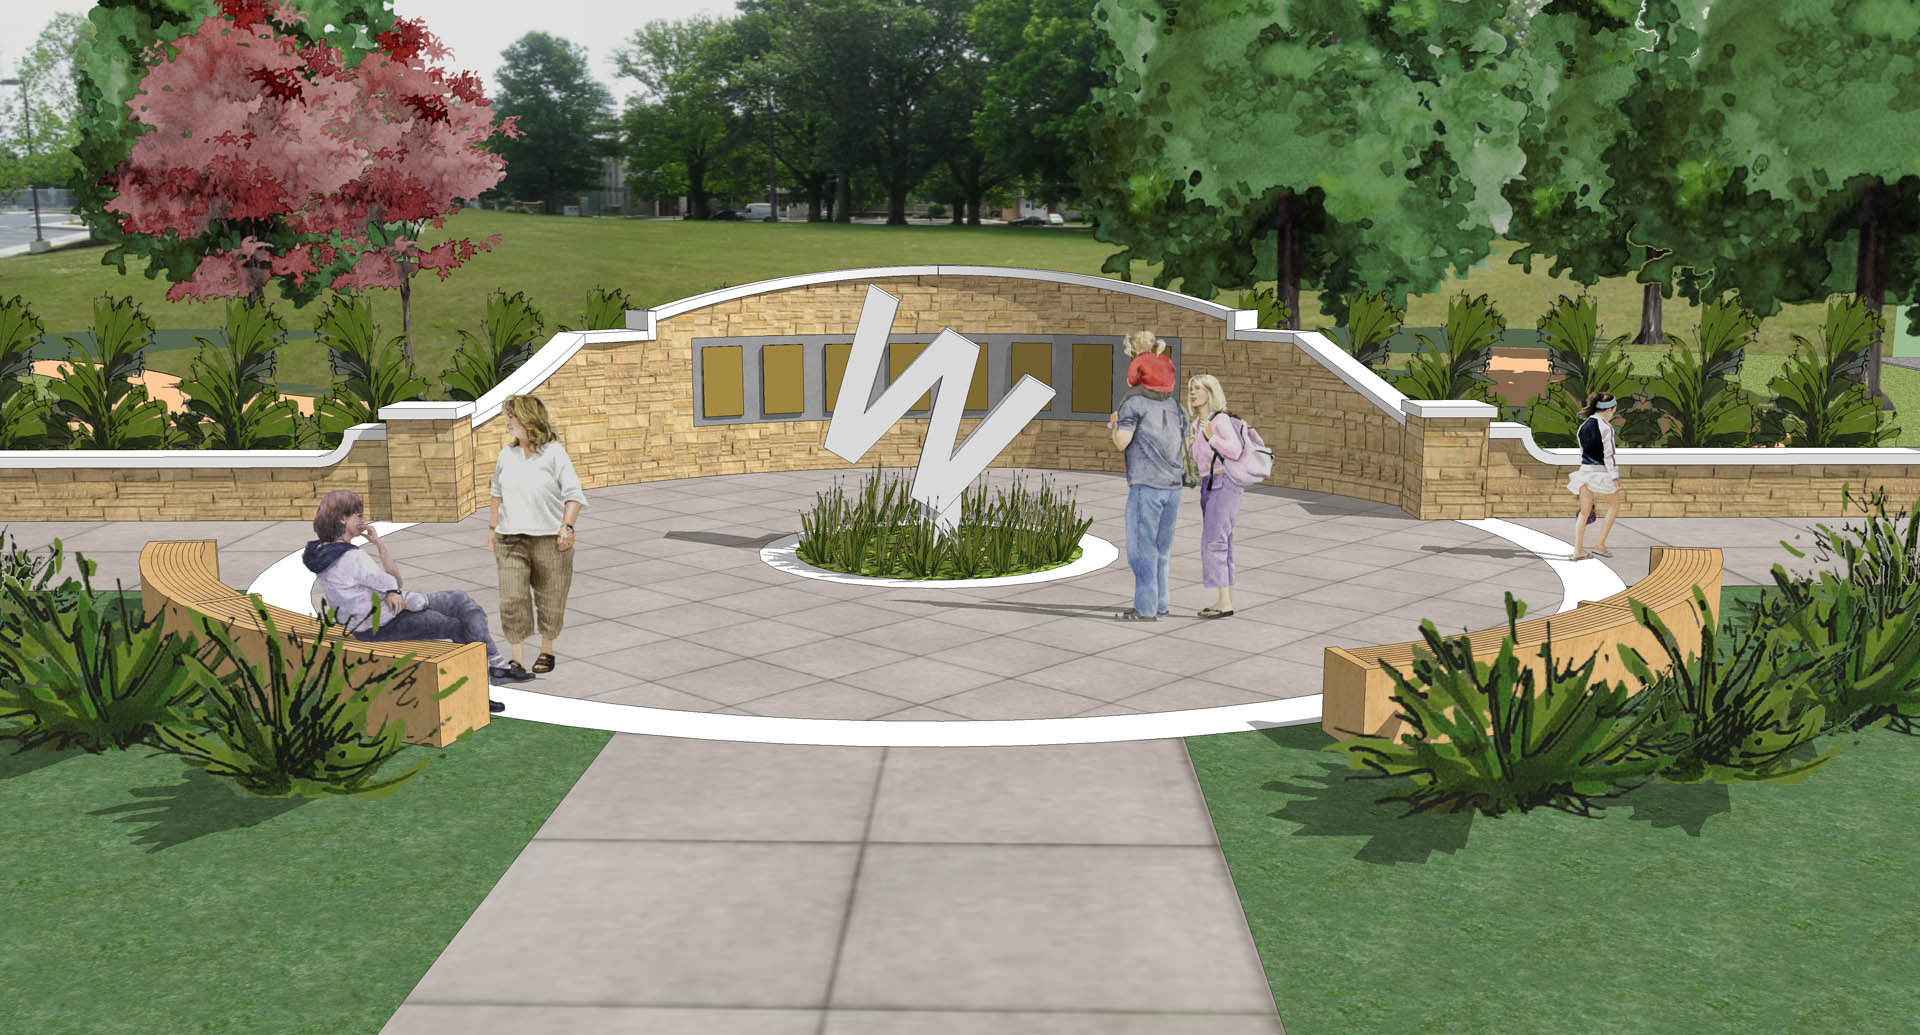 Warwick High School Alumni Plaza Perspective